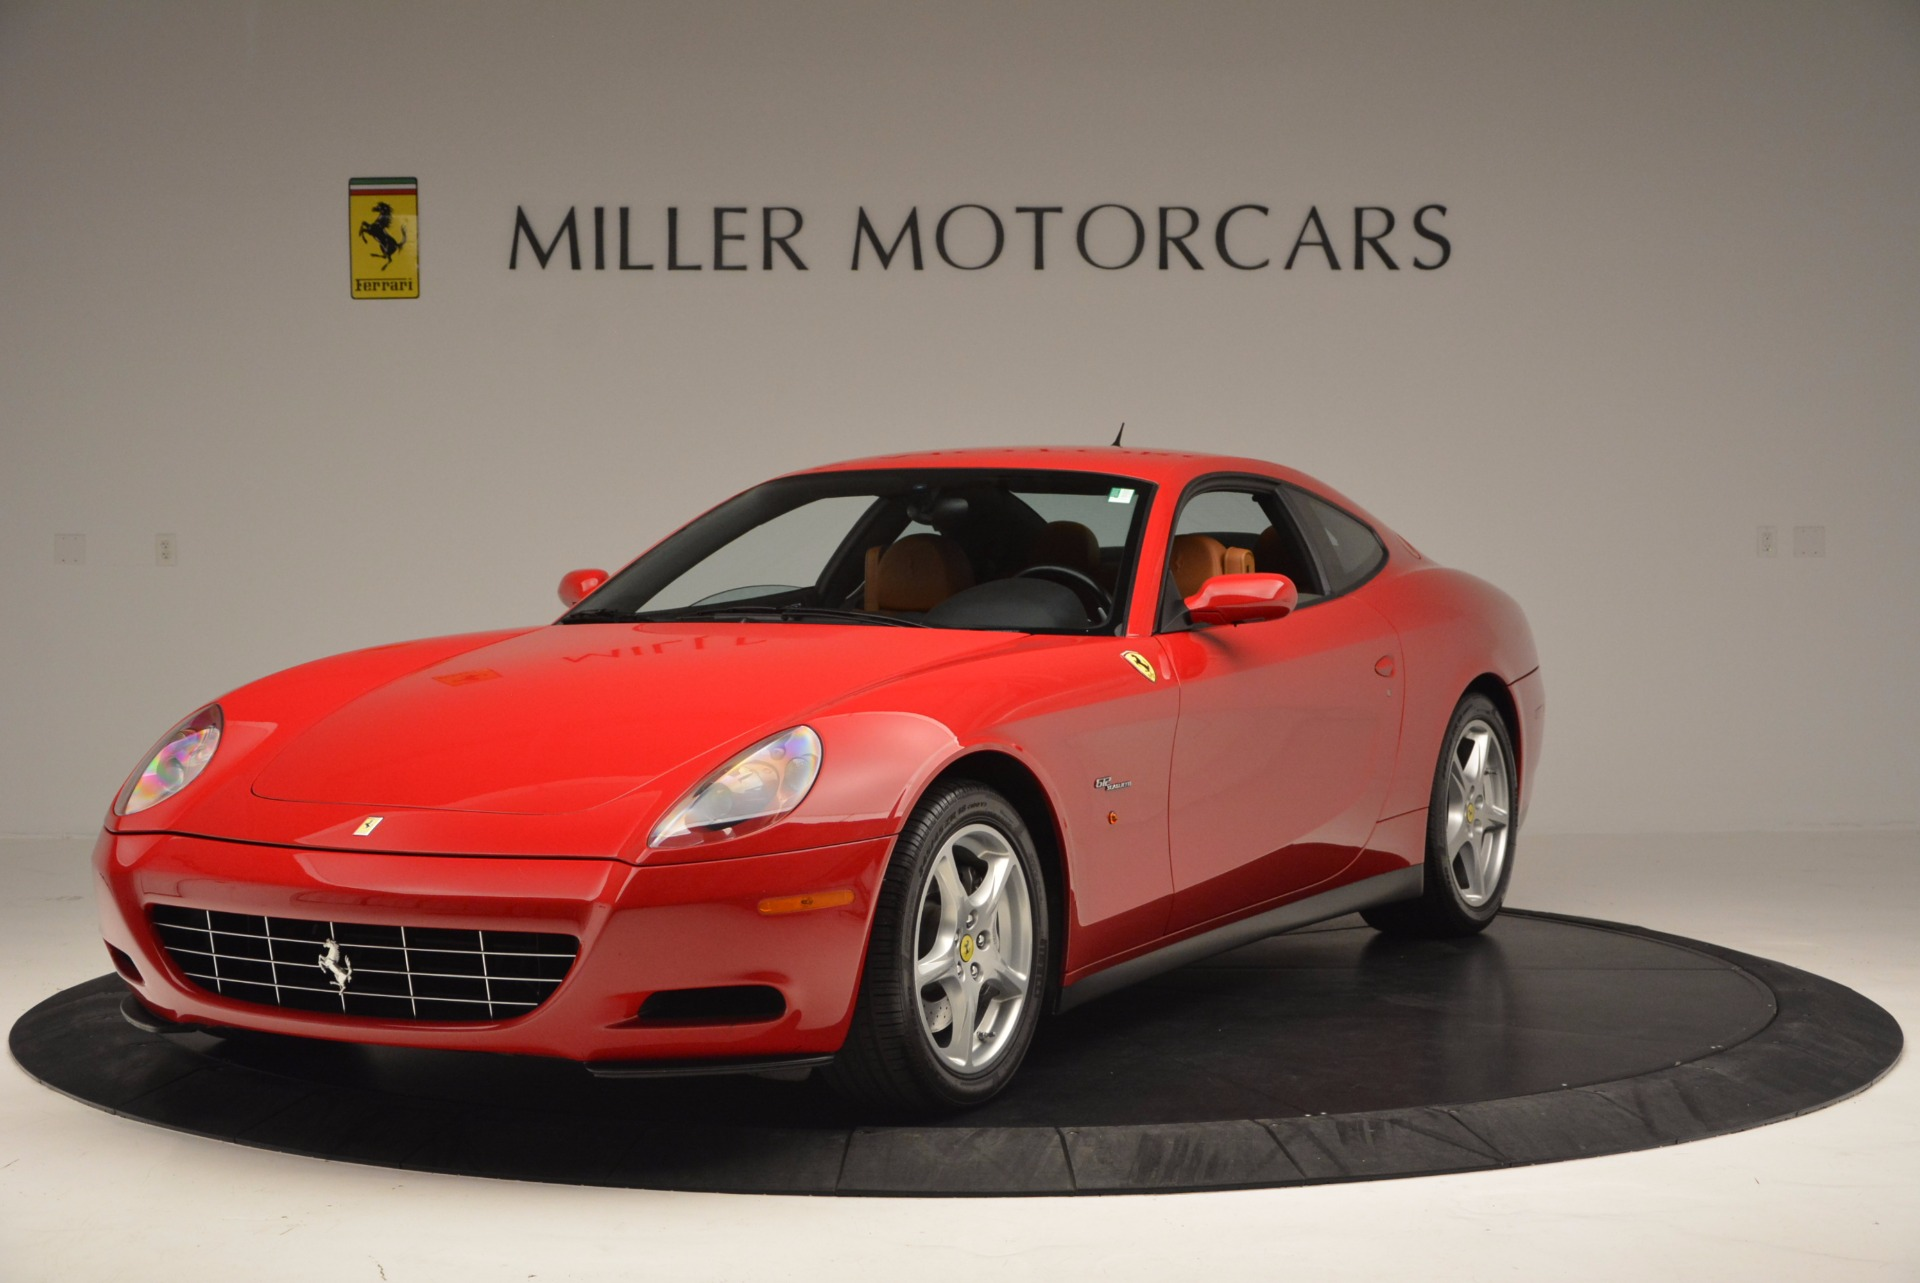 Used 2005 Ferrari 612 Scaglietti for sale Sold at Bugatti of Greenwich in Greenwich CT 06830 1